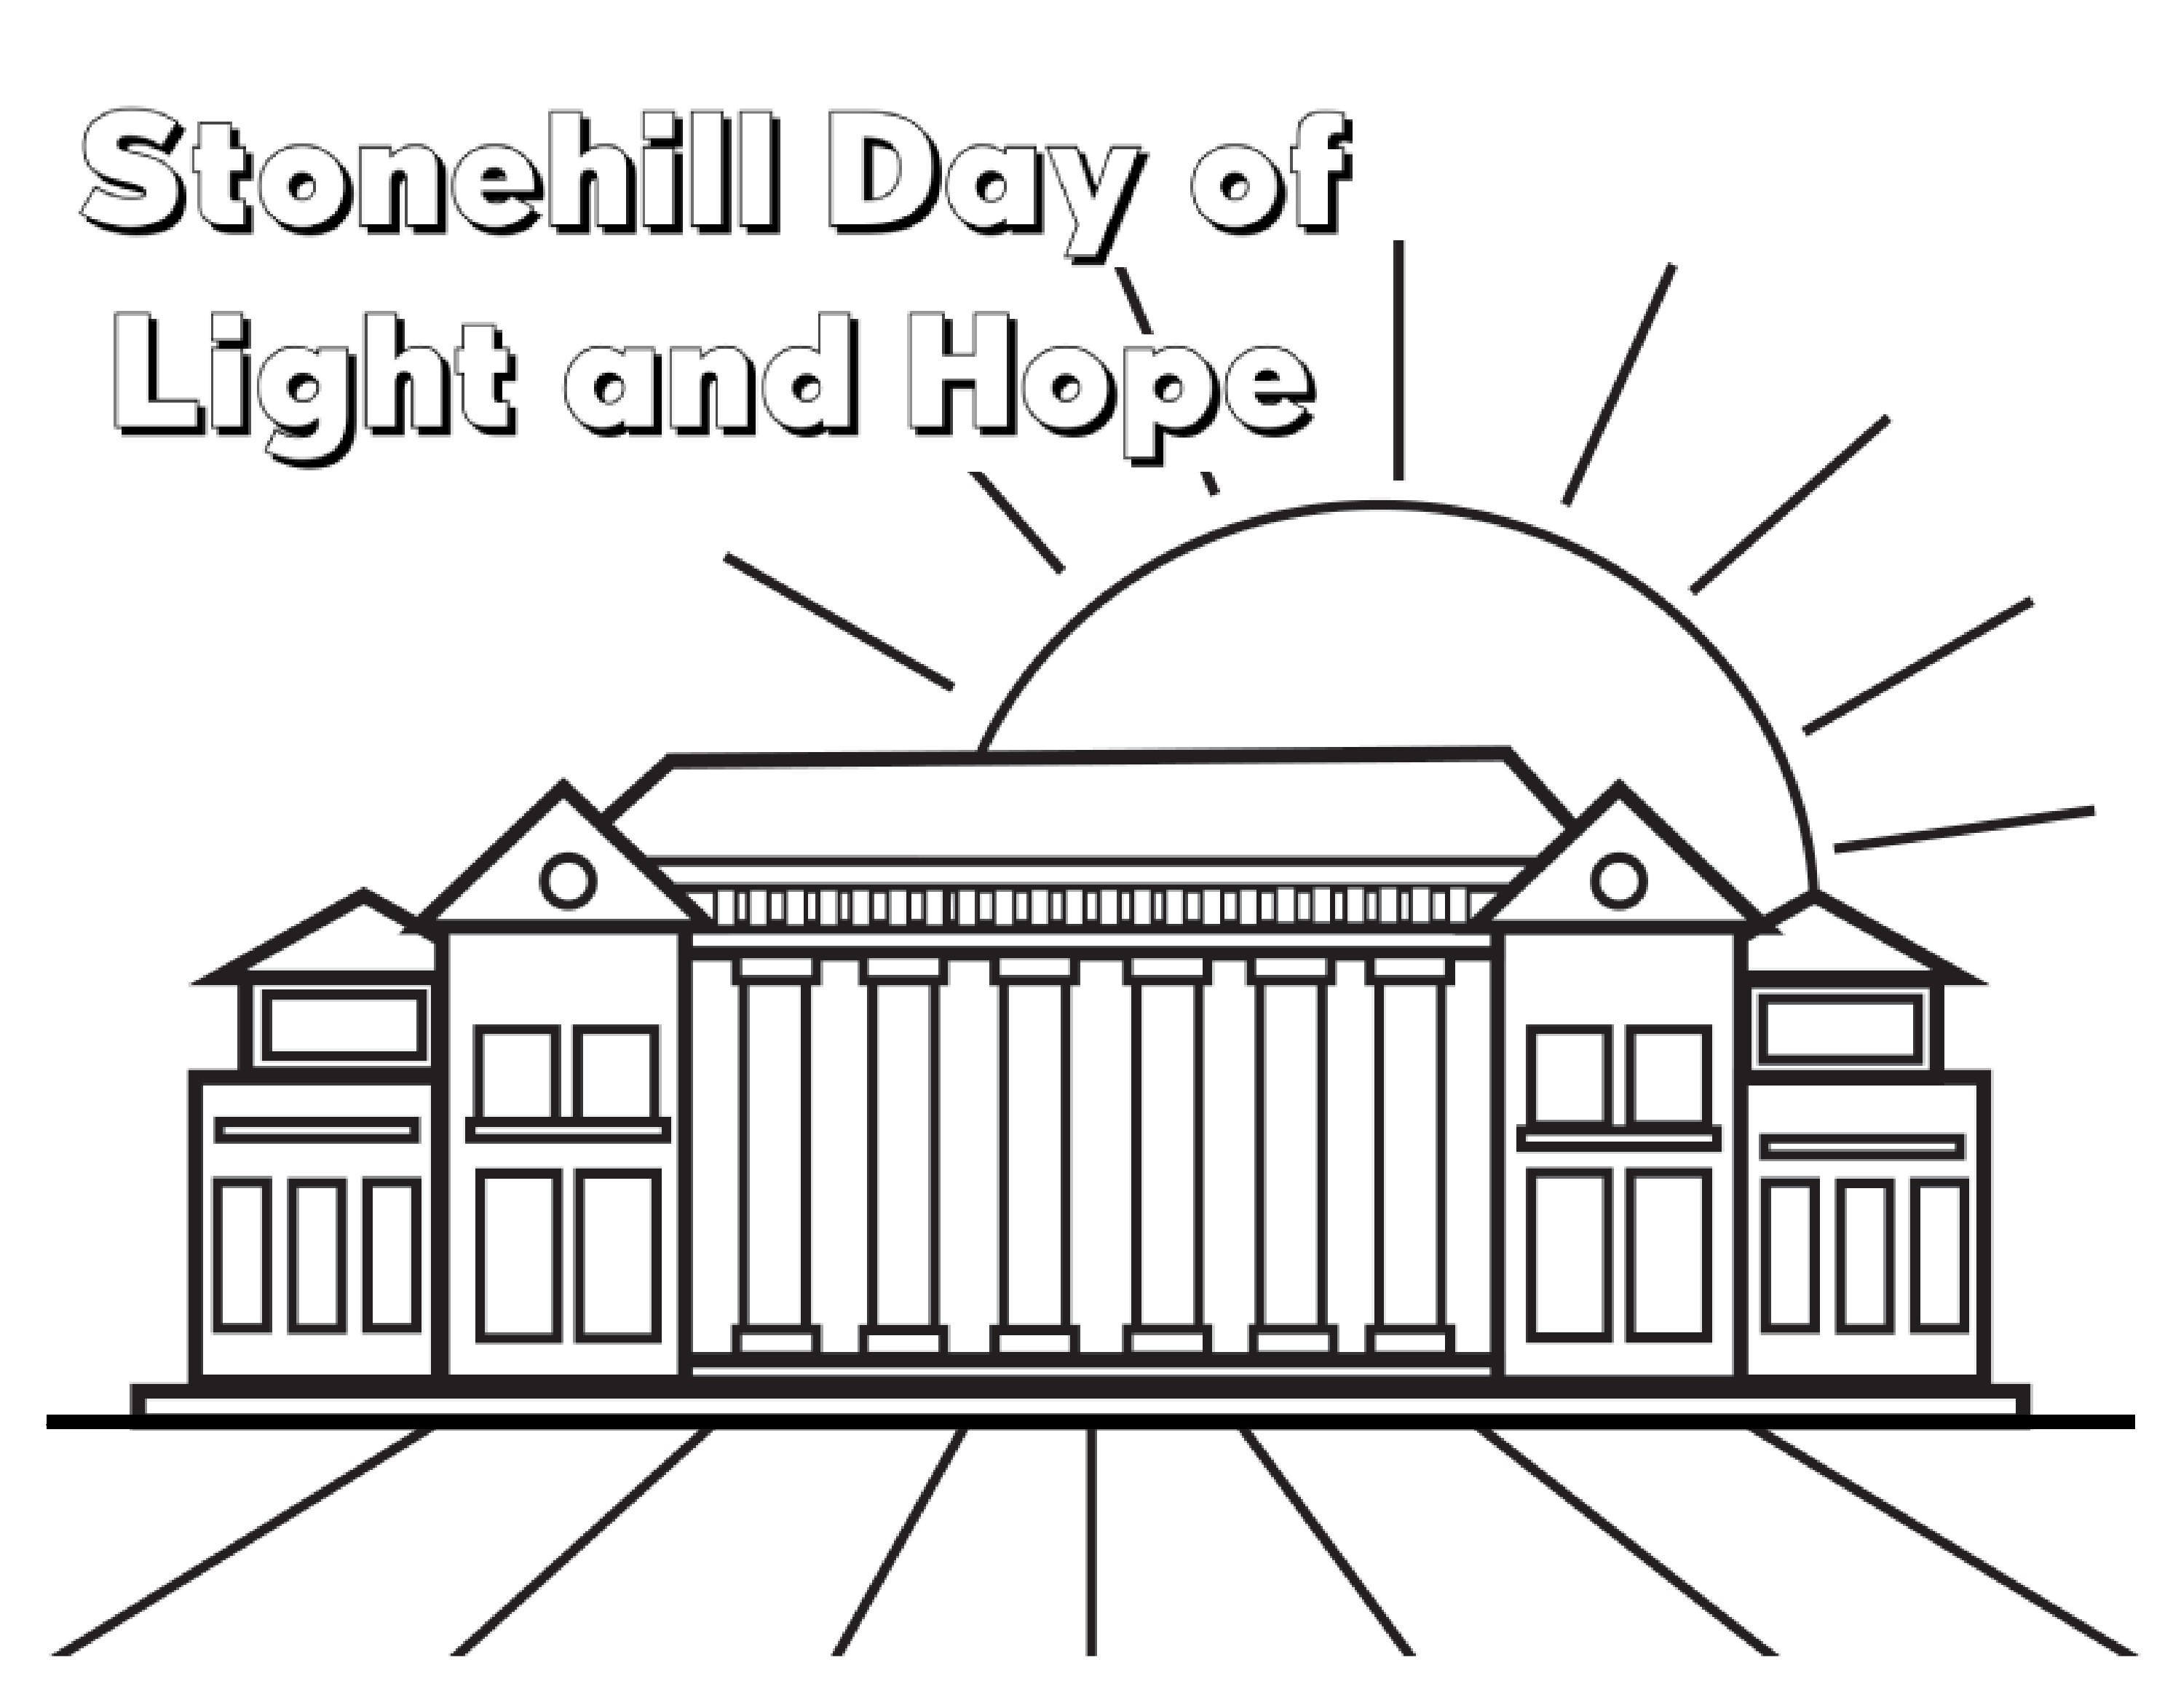 Donahue Hall outline with wording Stonehill Day of Light and Hope